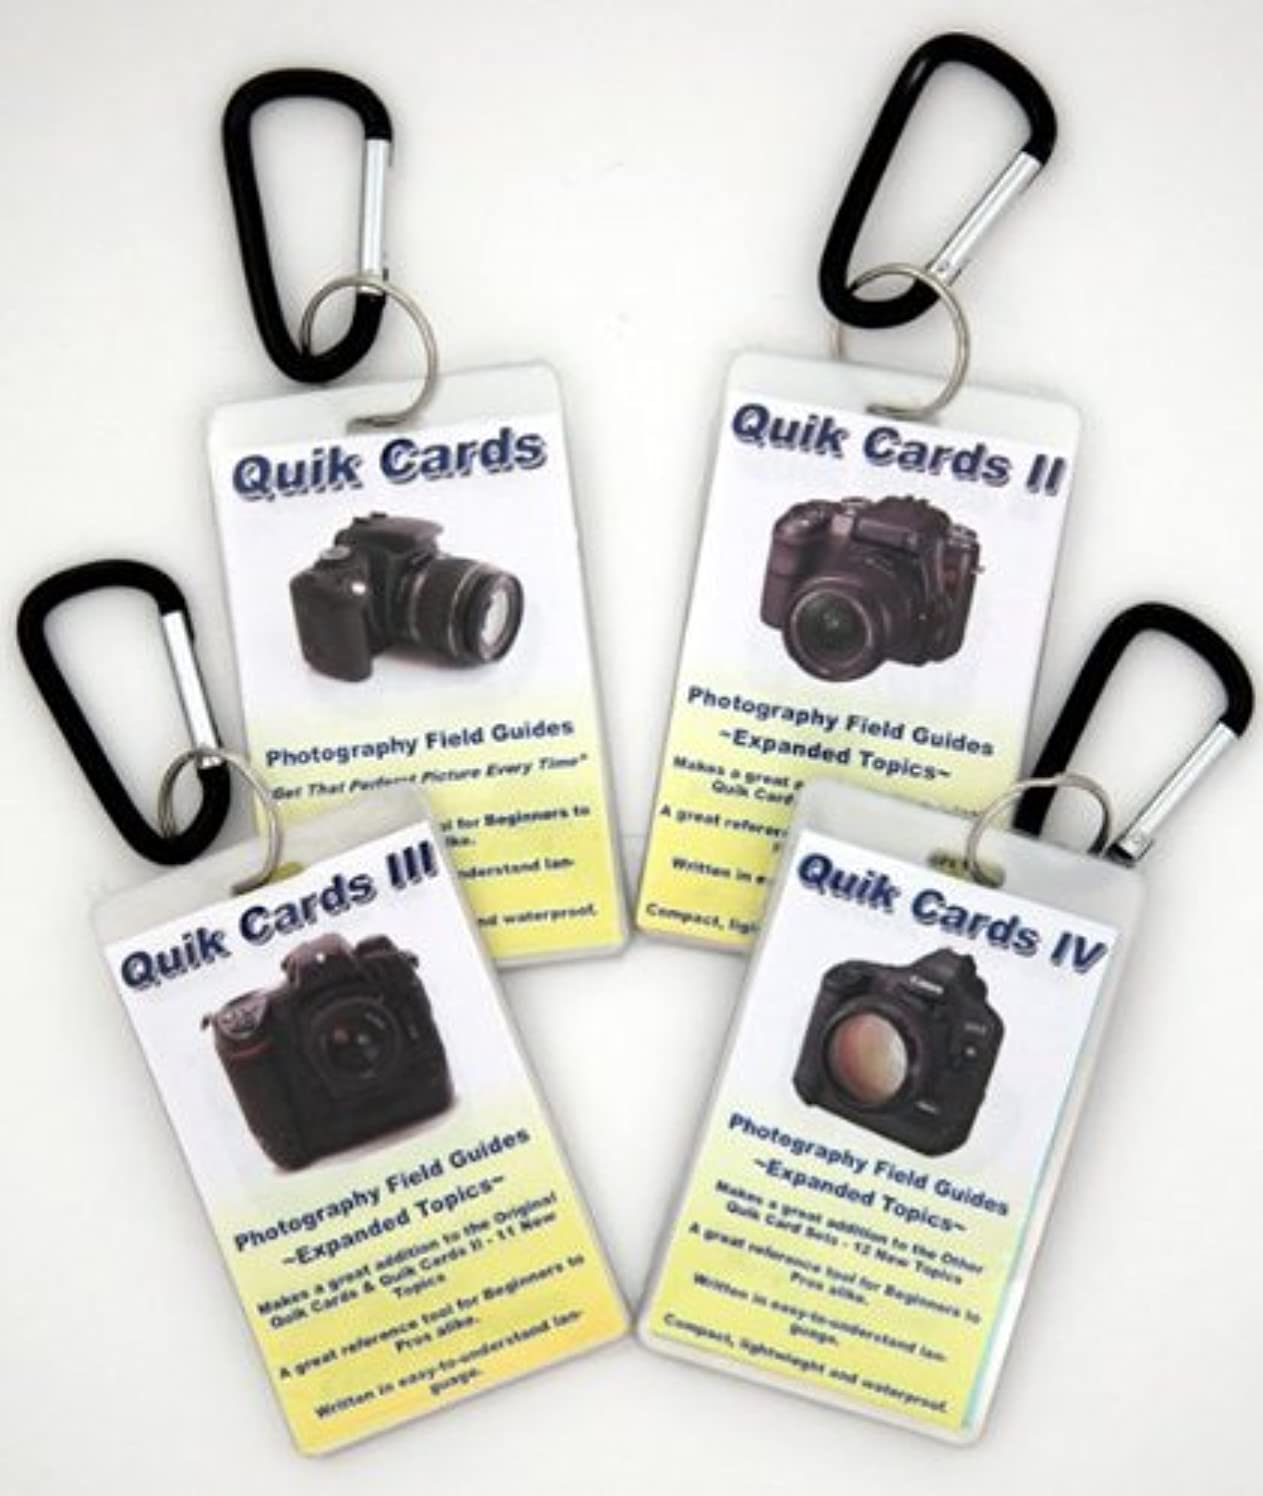 4-Pack DSLR & SLR Cheatsheets. Pocket sized quick reference cards. Complete series for use with Olympus E-1 E-3 E-5 E-30 E-300 E-330 E-400 E-410 E-420 E-450 E-500 E-510 E-520 E-600 E-620